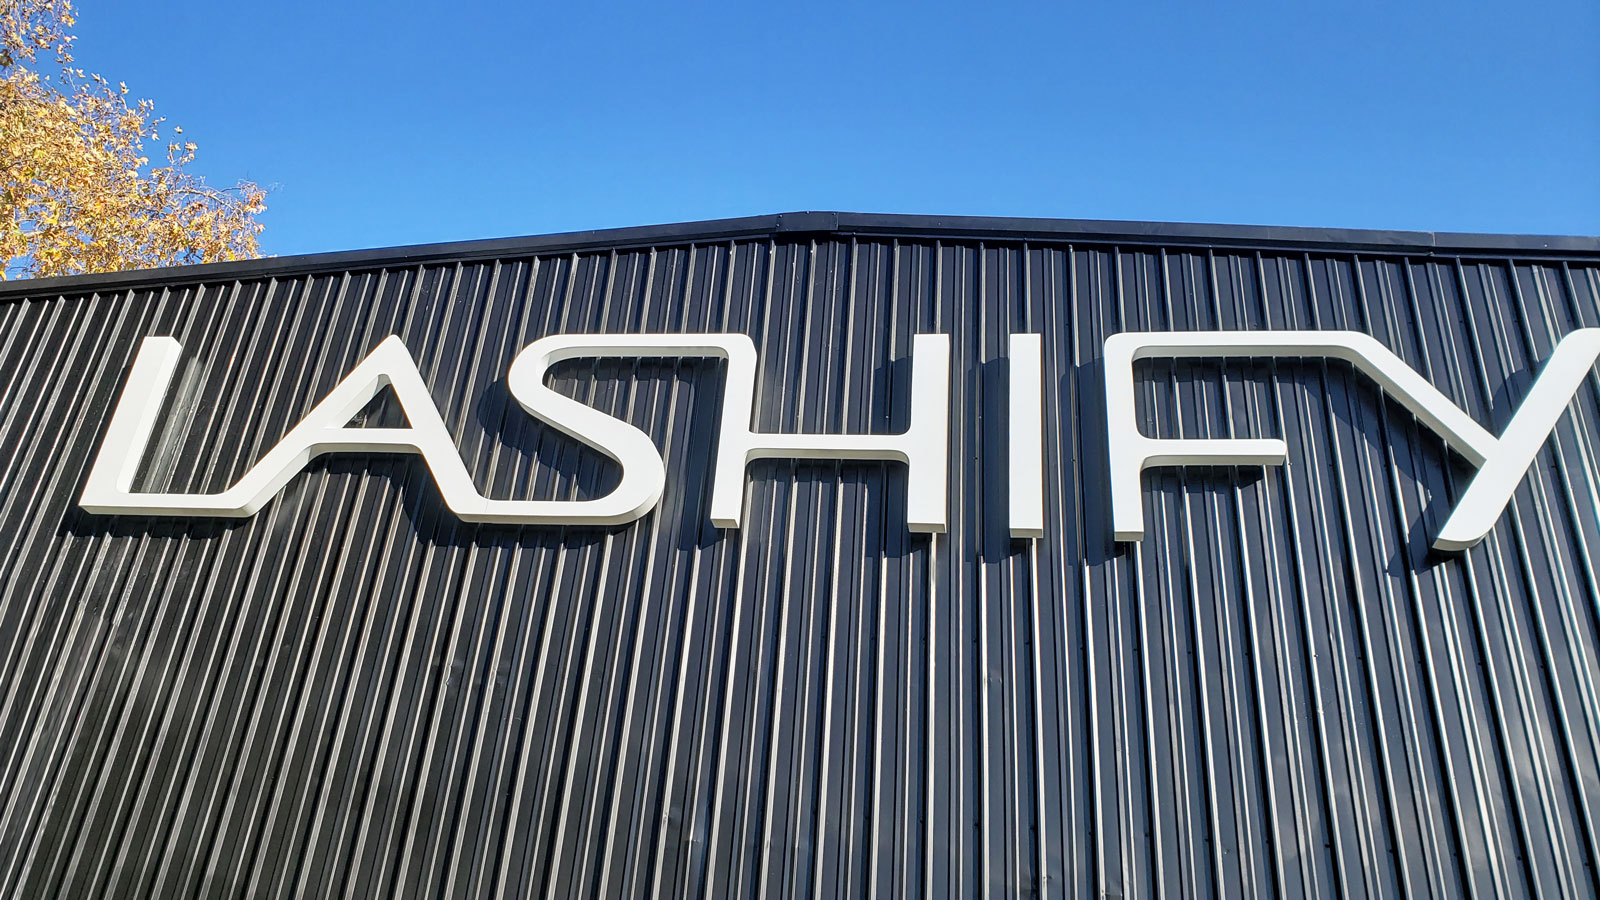 Lashify illuminated 3d sign in a big size with the brand name made of acrylic and aluminum for the beauty company branding